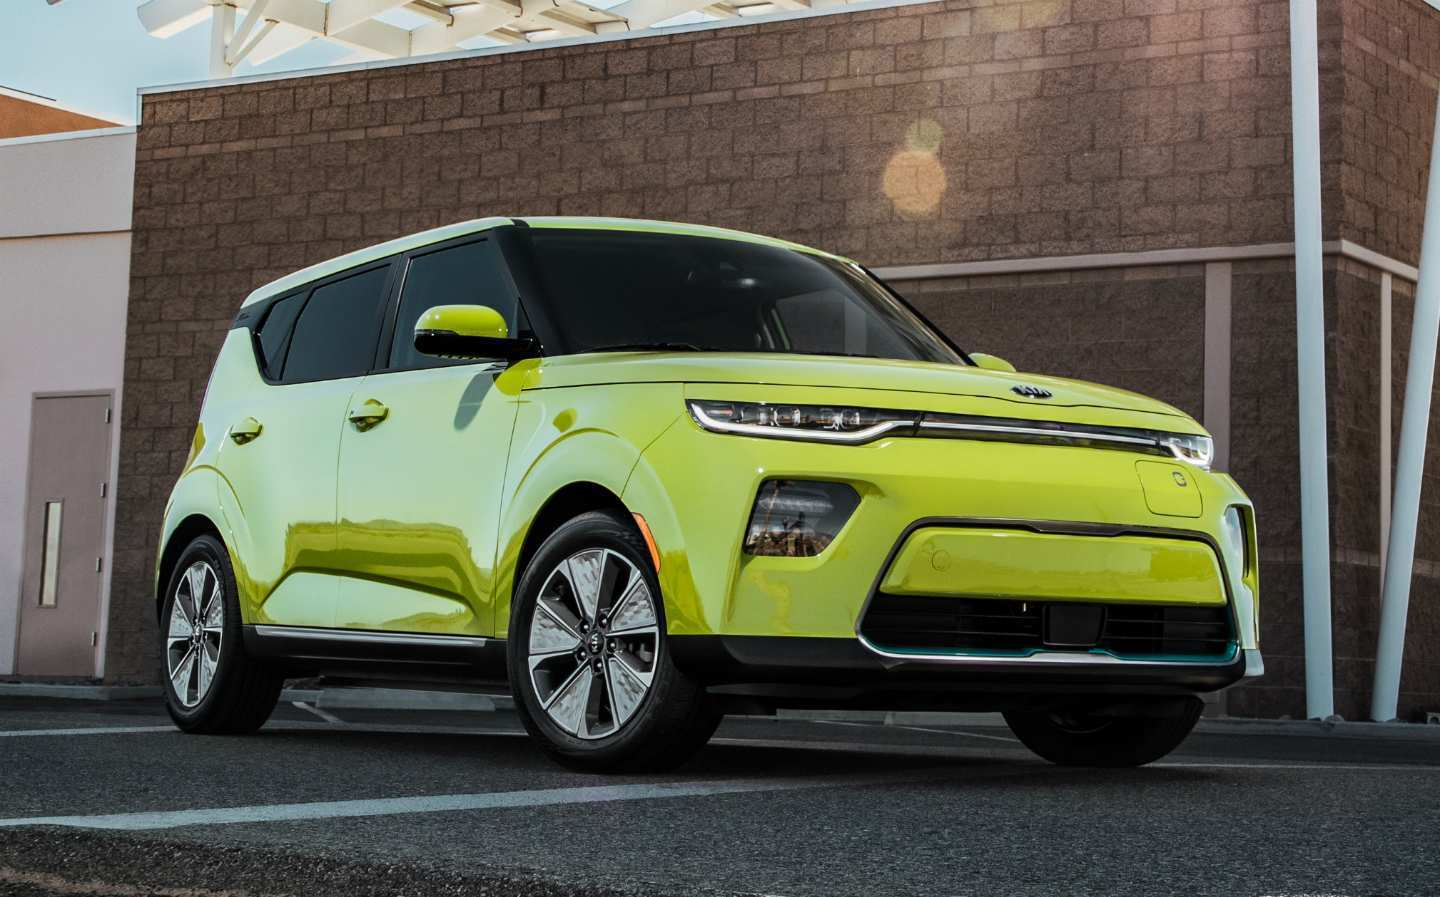 87 All New 2019 Kia Soul Awd Photos